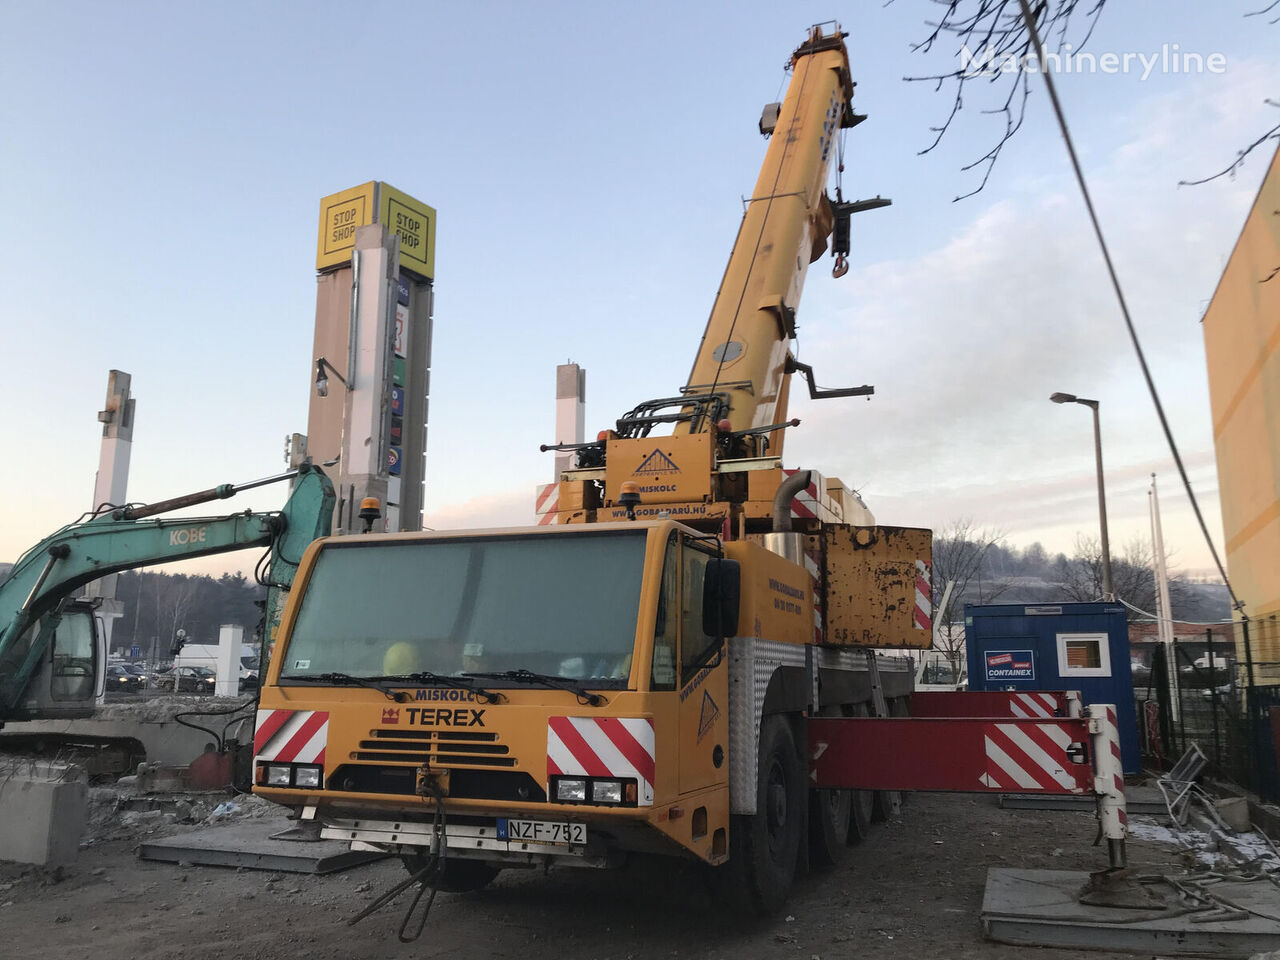 AC100 on chassis DEMAG AC100 mobile crane